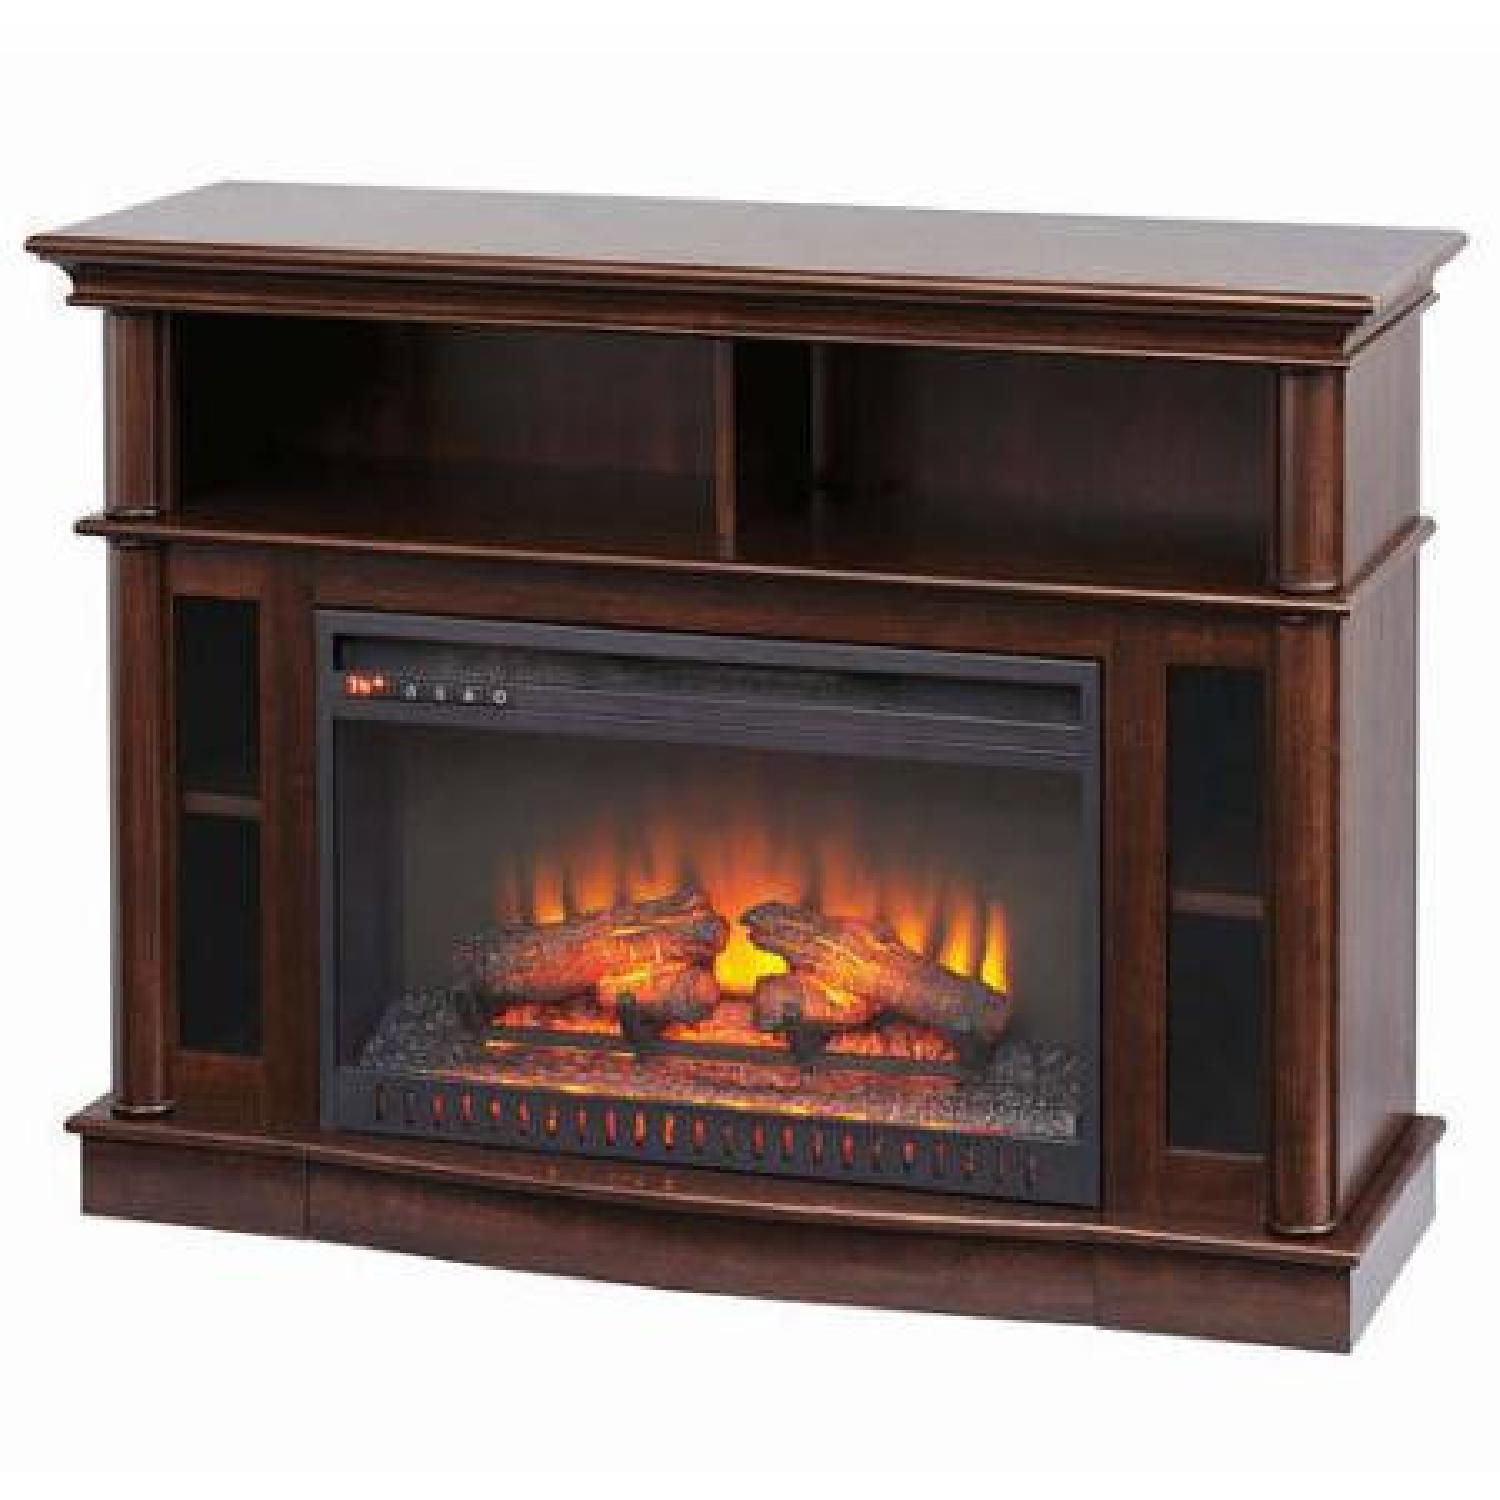 Better Homes & Gardens Media Console w/ Fireplace - image-0